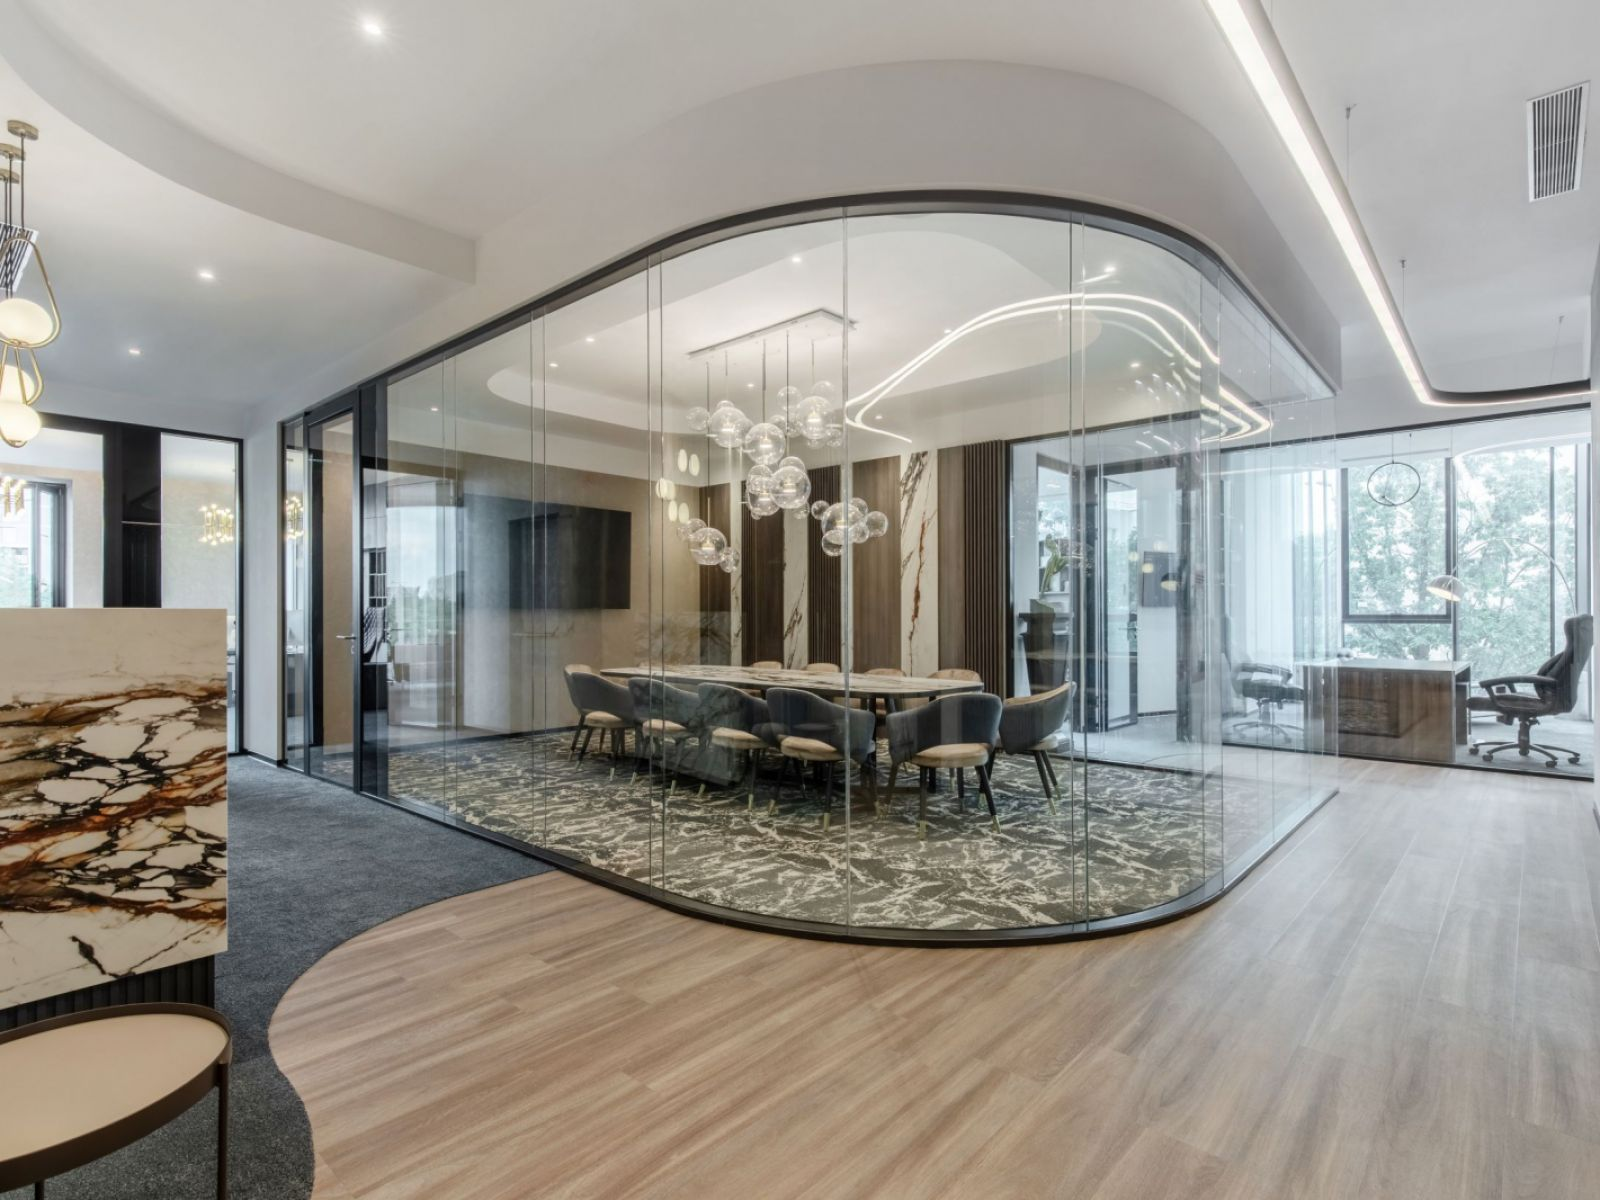 Lemon Office Design signs Thematic Channels` office design project at One Herăstrău Towers